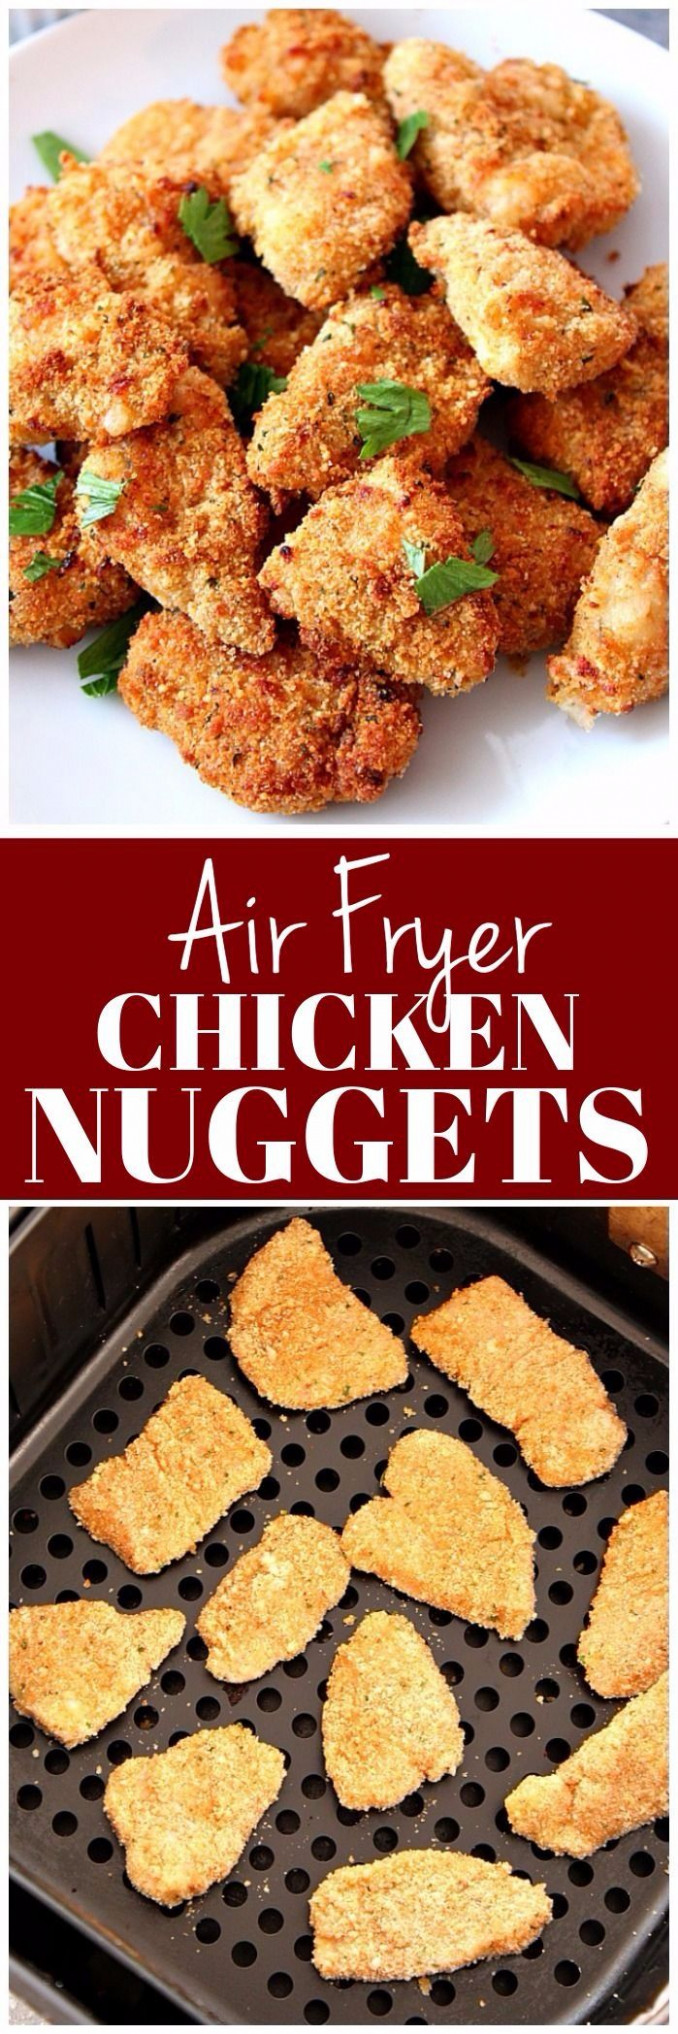 Best 25+ Air fryer chicken recipes ideas on Pinterest ...